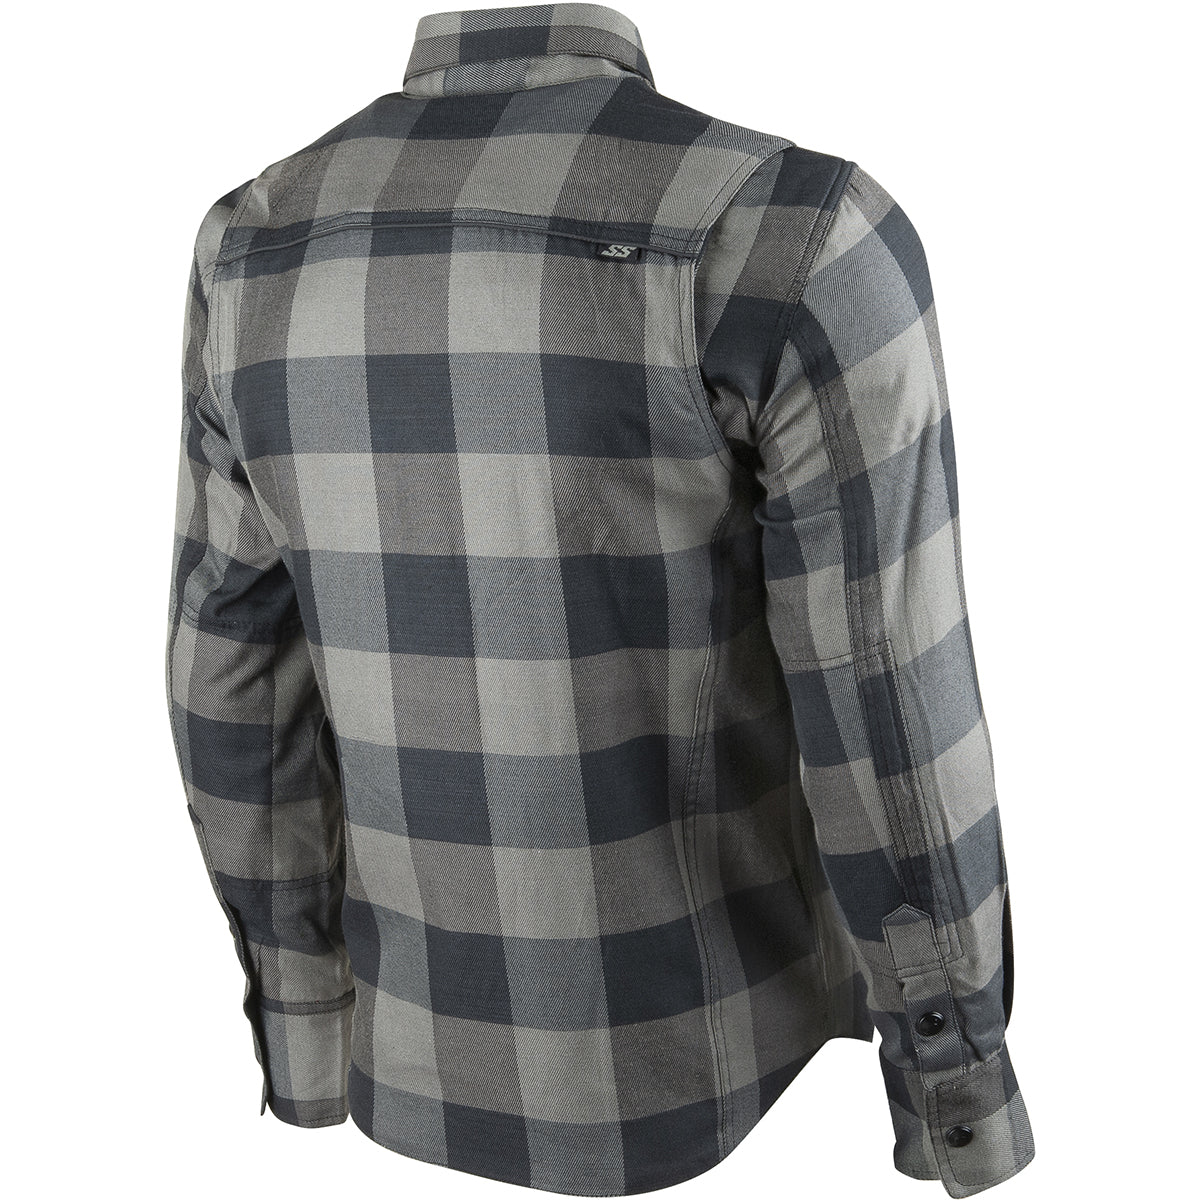 Speed & Strength 2021 Introducing The True Grit Armored Motorcycle Shirt